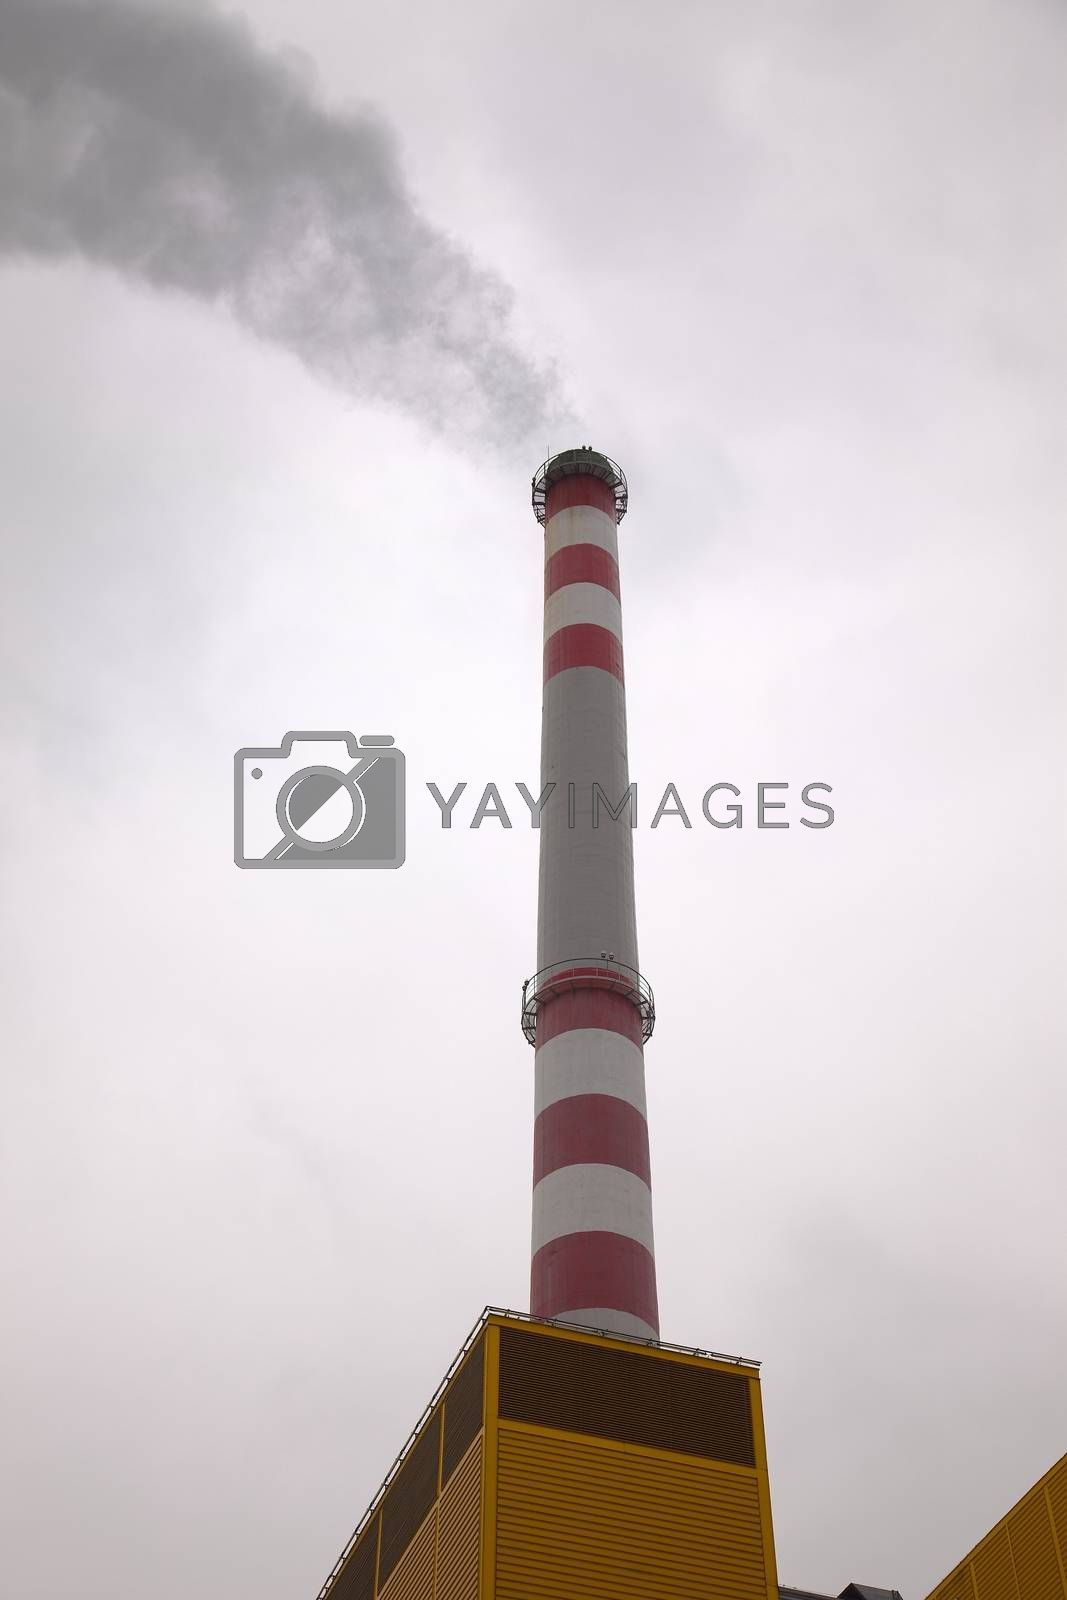 Industrial chimney smoking in the cloudy weather